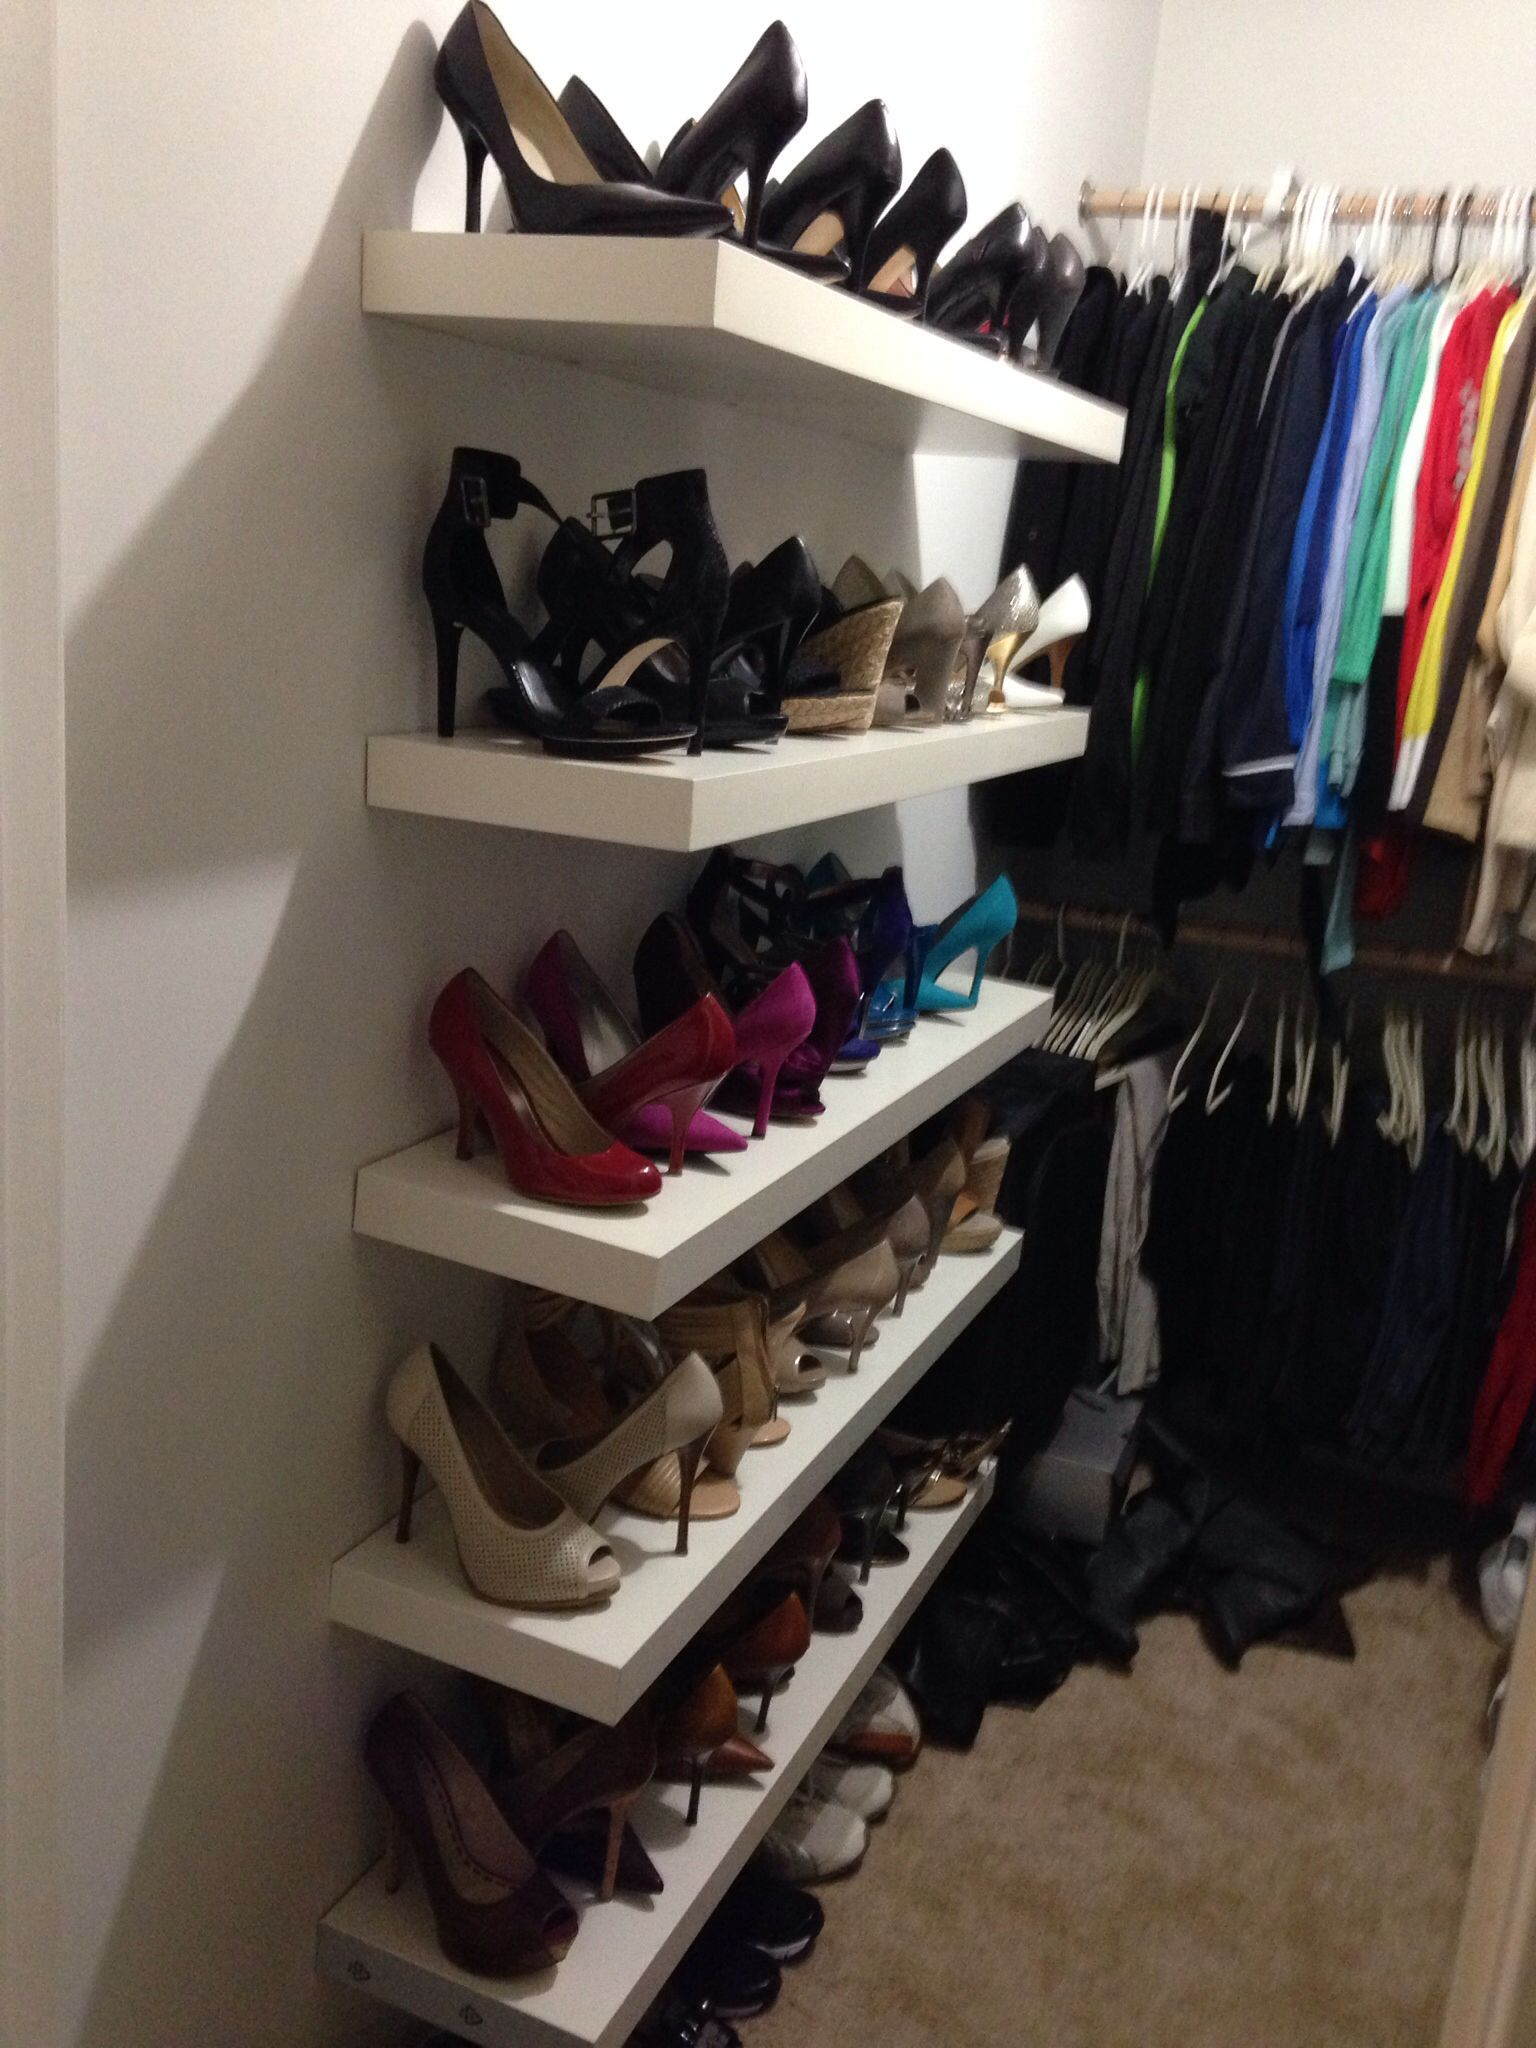 Lack Shelves From Ikea: Shoe Rack And Display